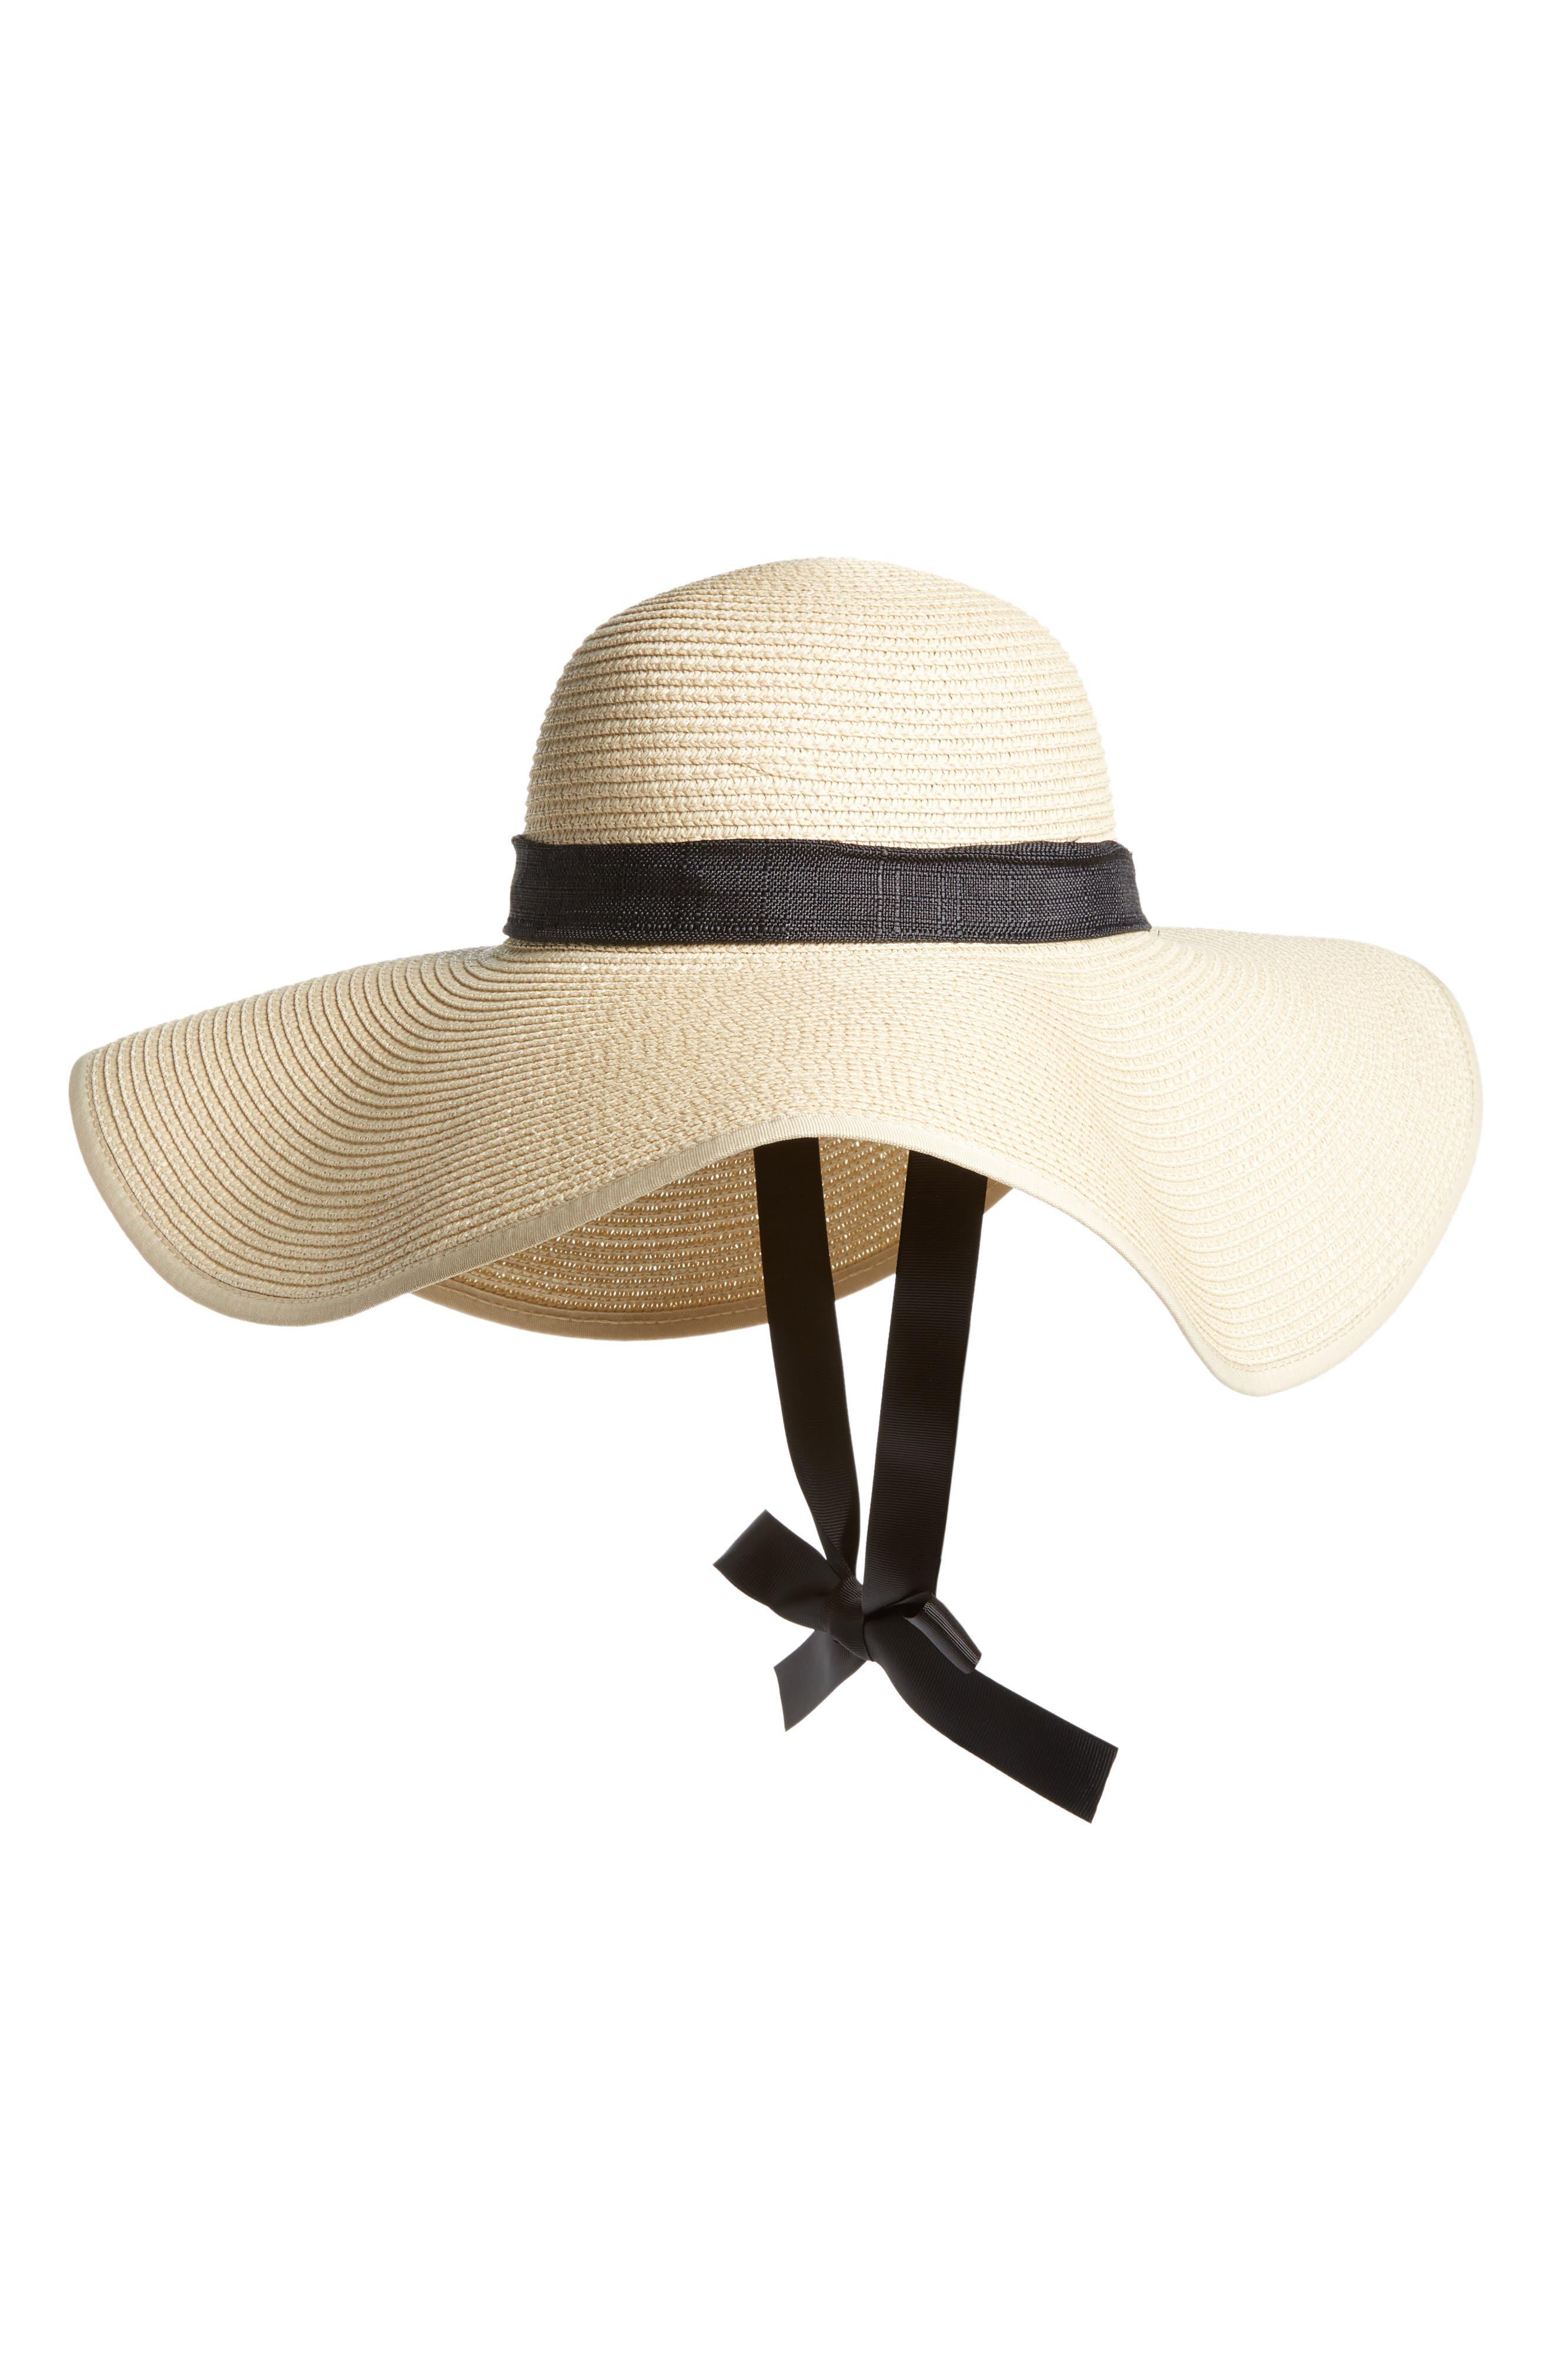 Tie Neck Ribbon Floppy Straw Hat,                         Main,                         color, Black/ Natural